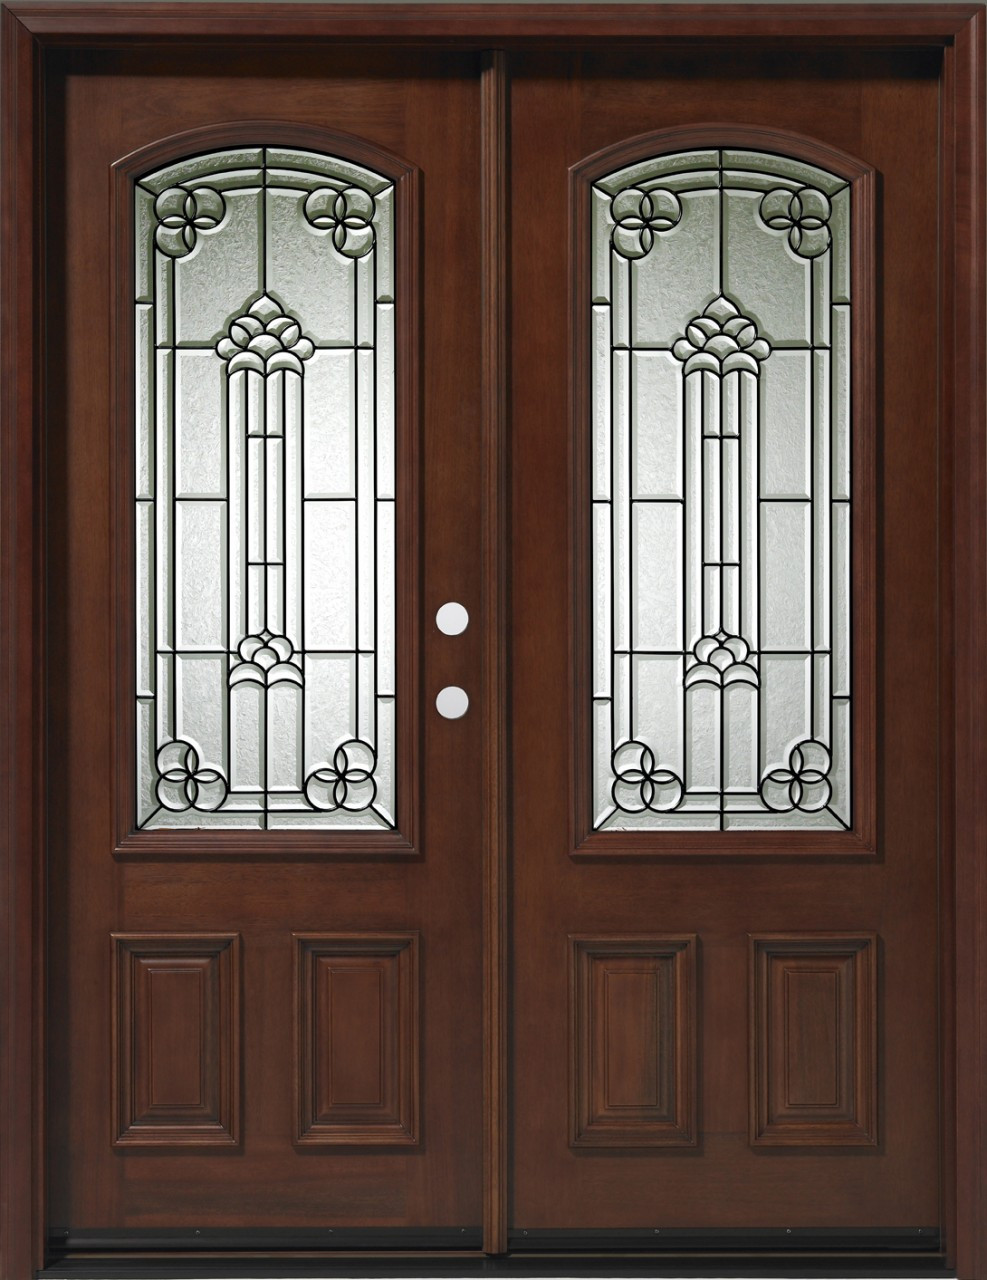 Discount door center prehung and prefinished 3 4 lite for Exterior double entry doors